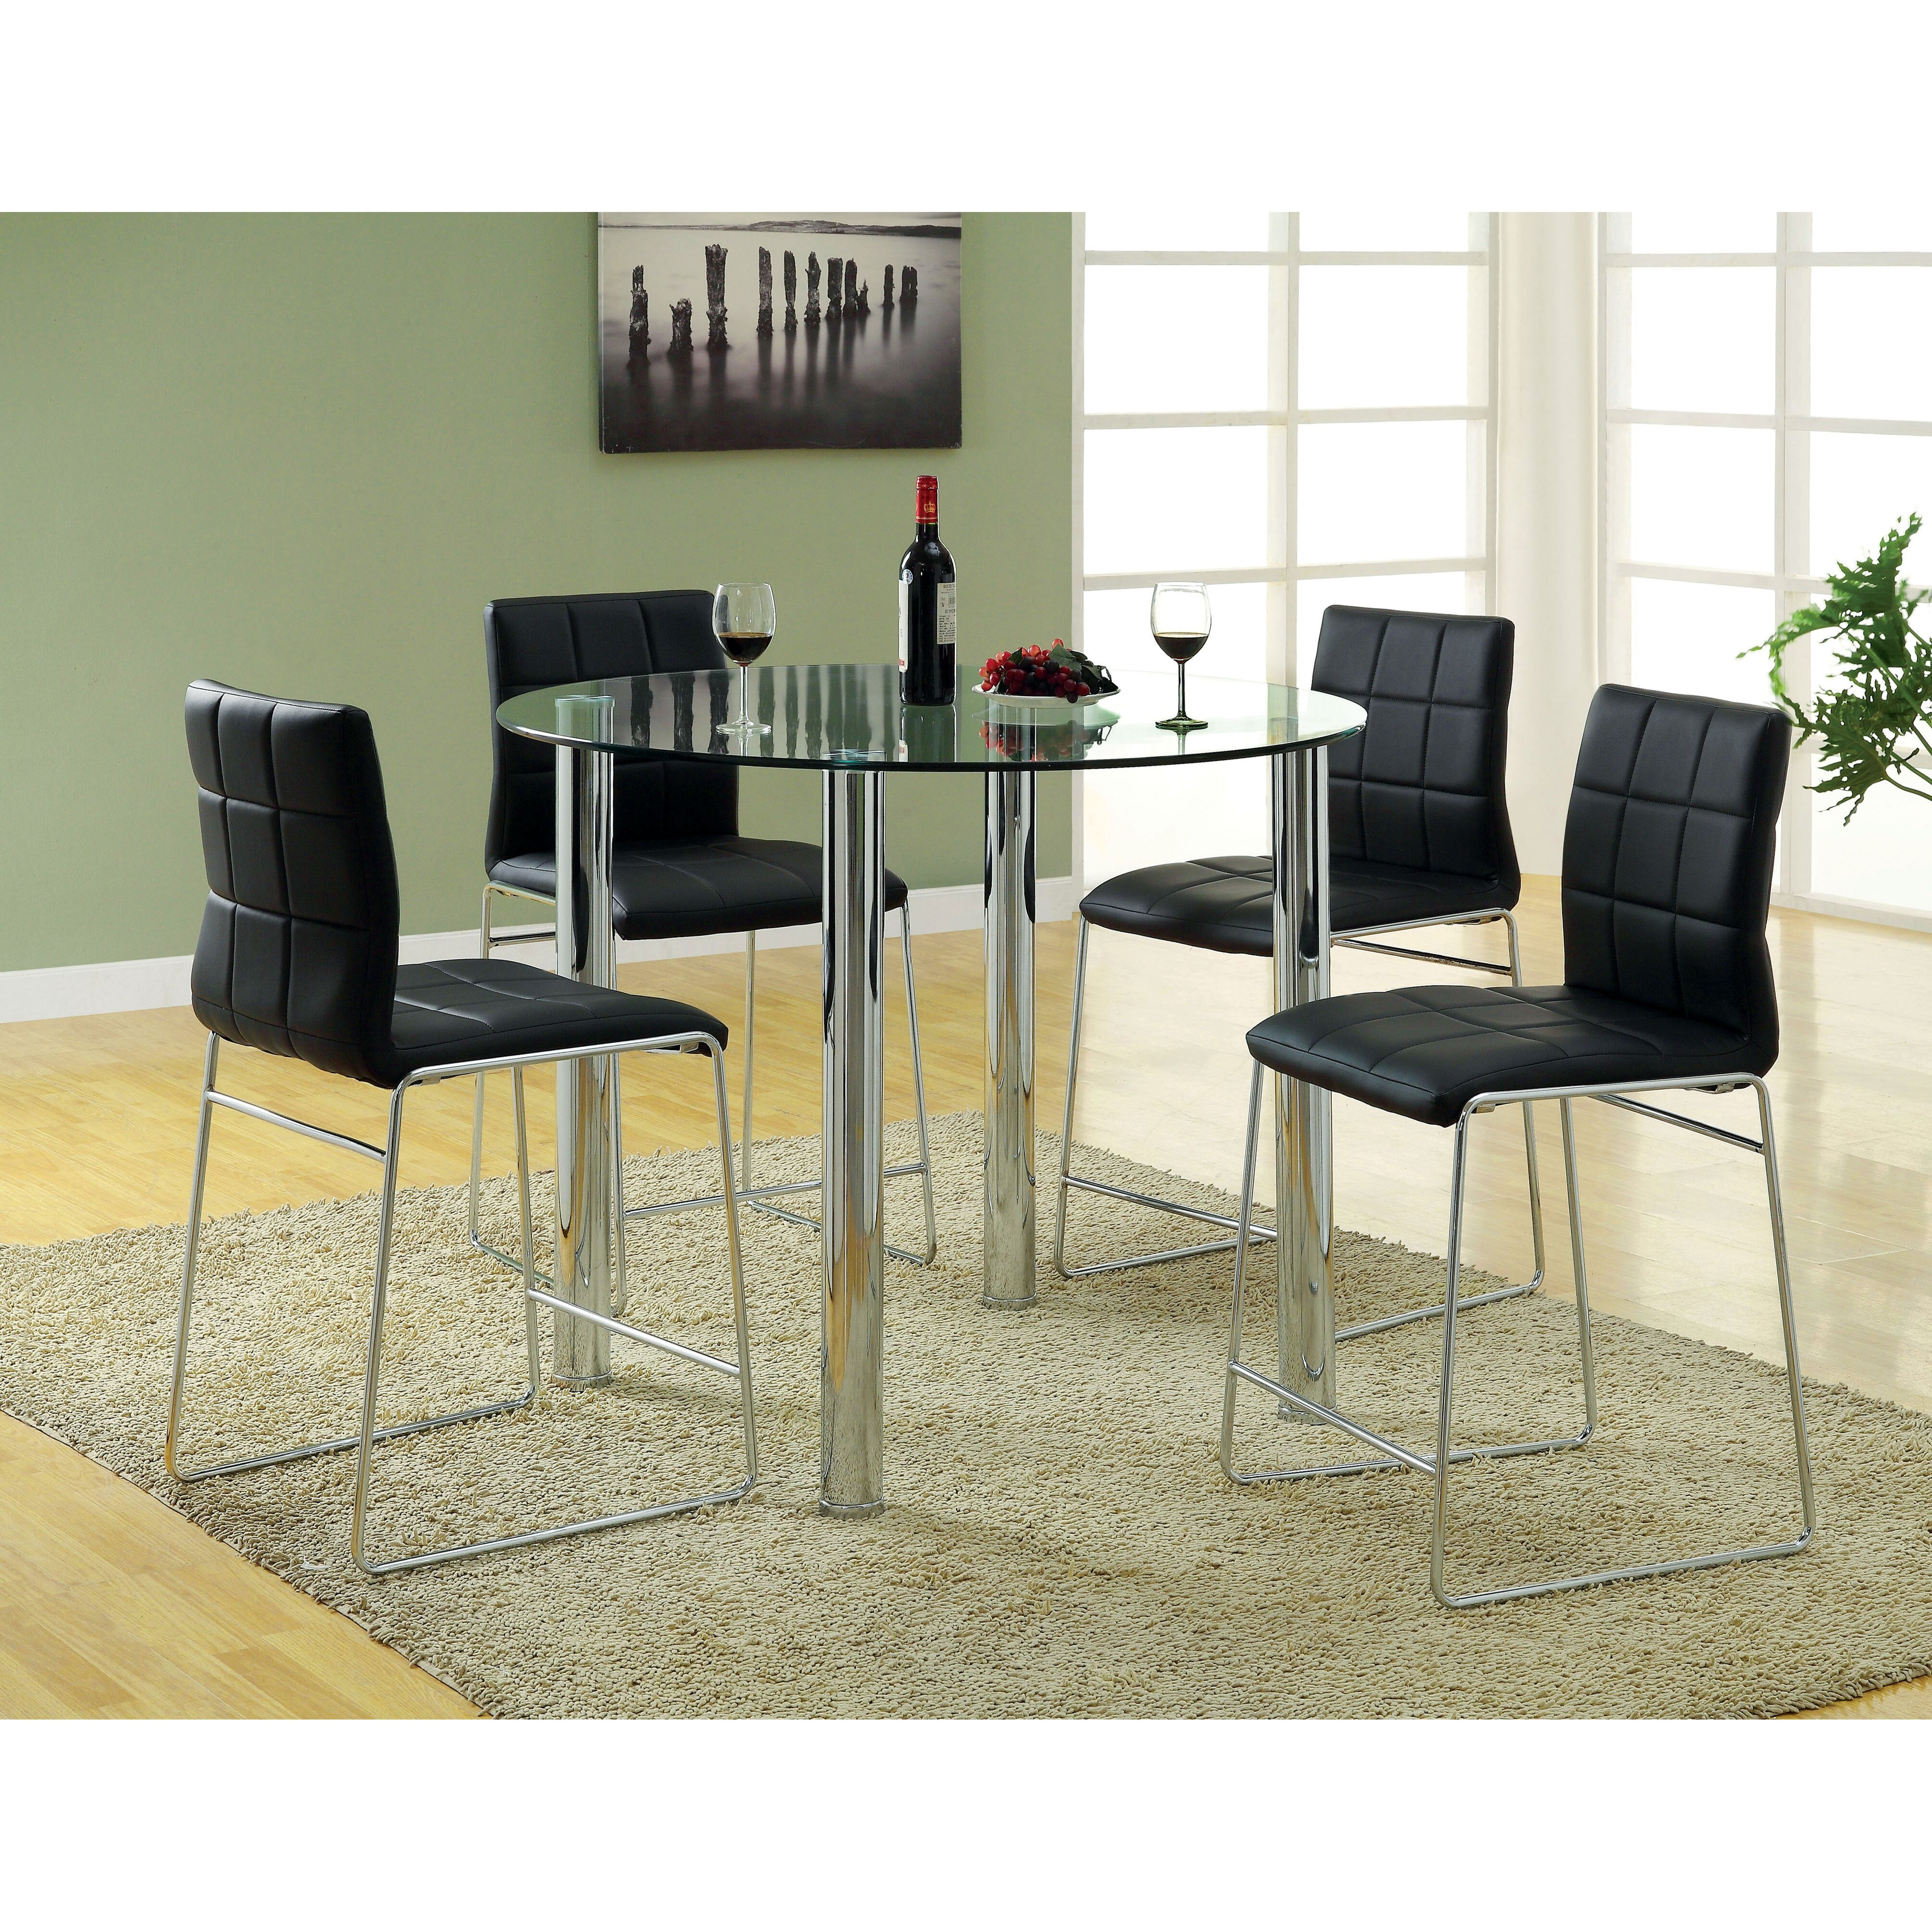 Kitchen Table Remodel: Hokku Designs Narbo Round Counter Height Dining Table